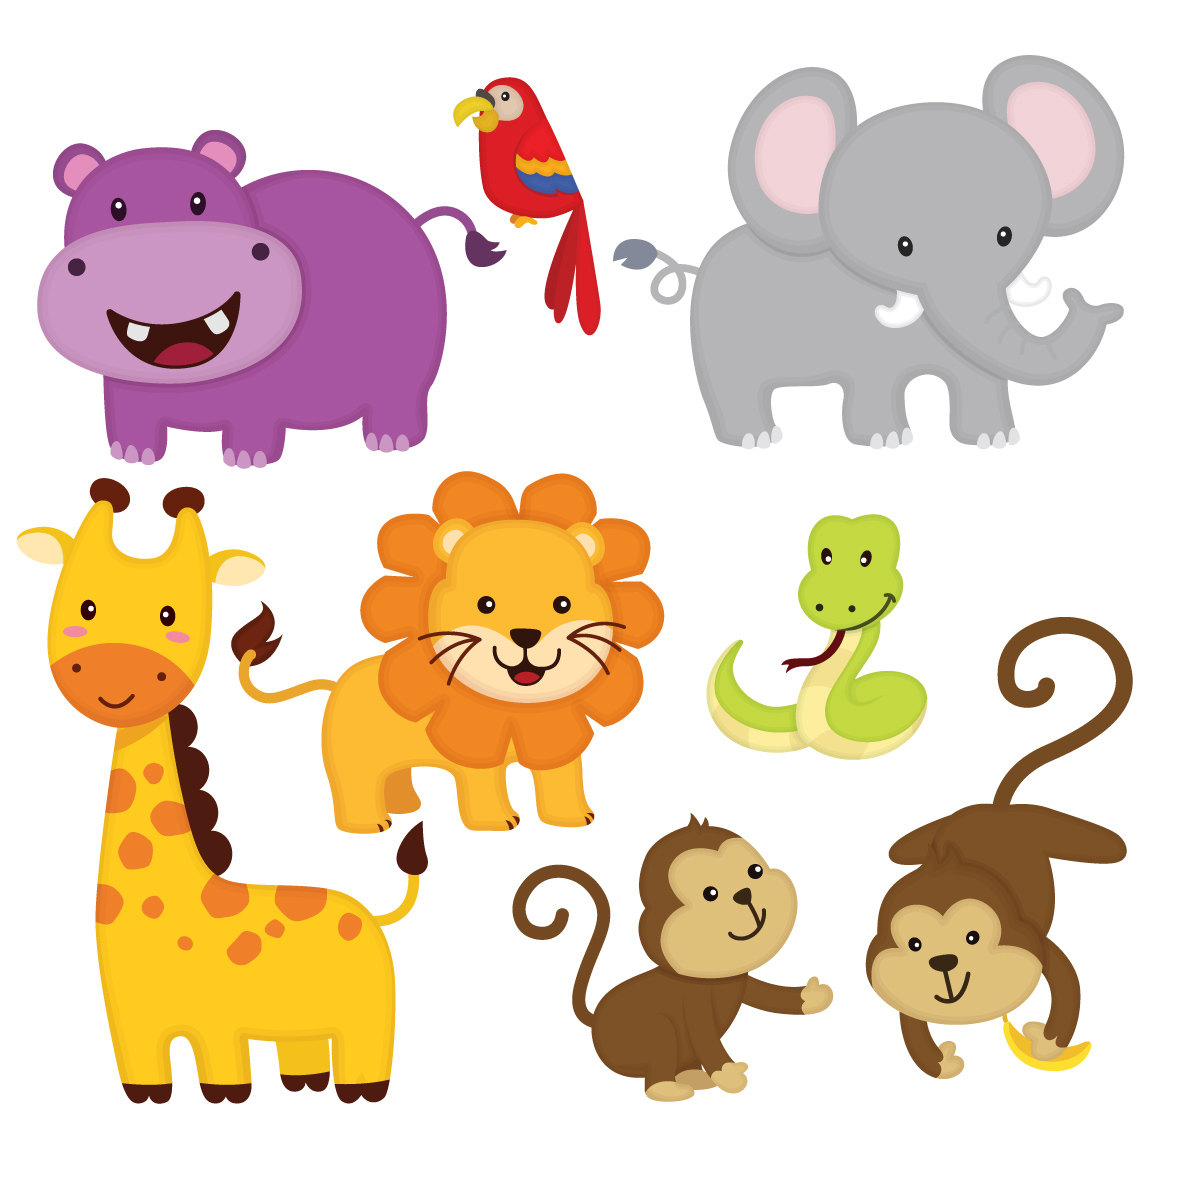 Animals clipart jungle. Animal friends cute this